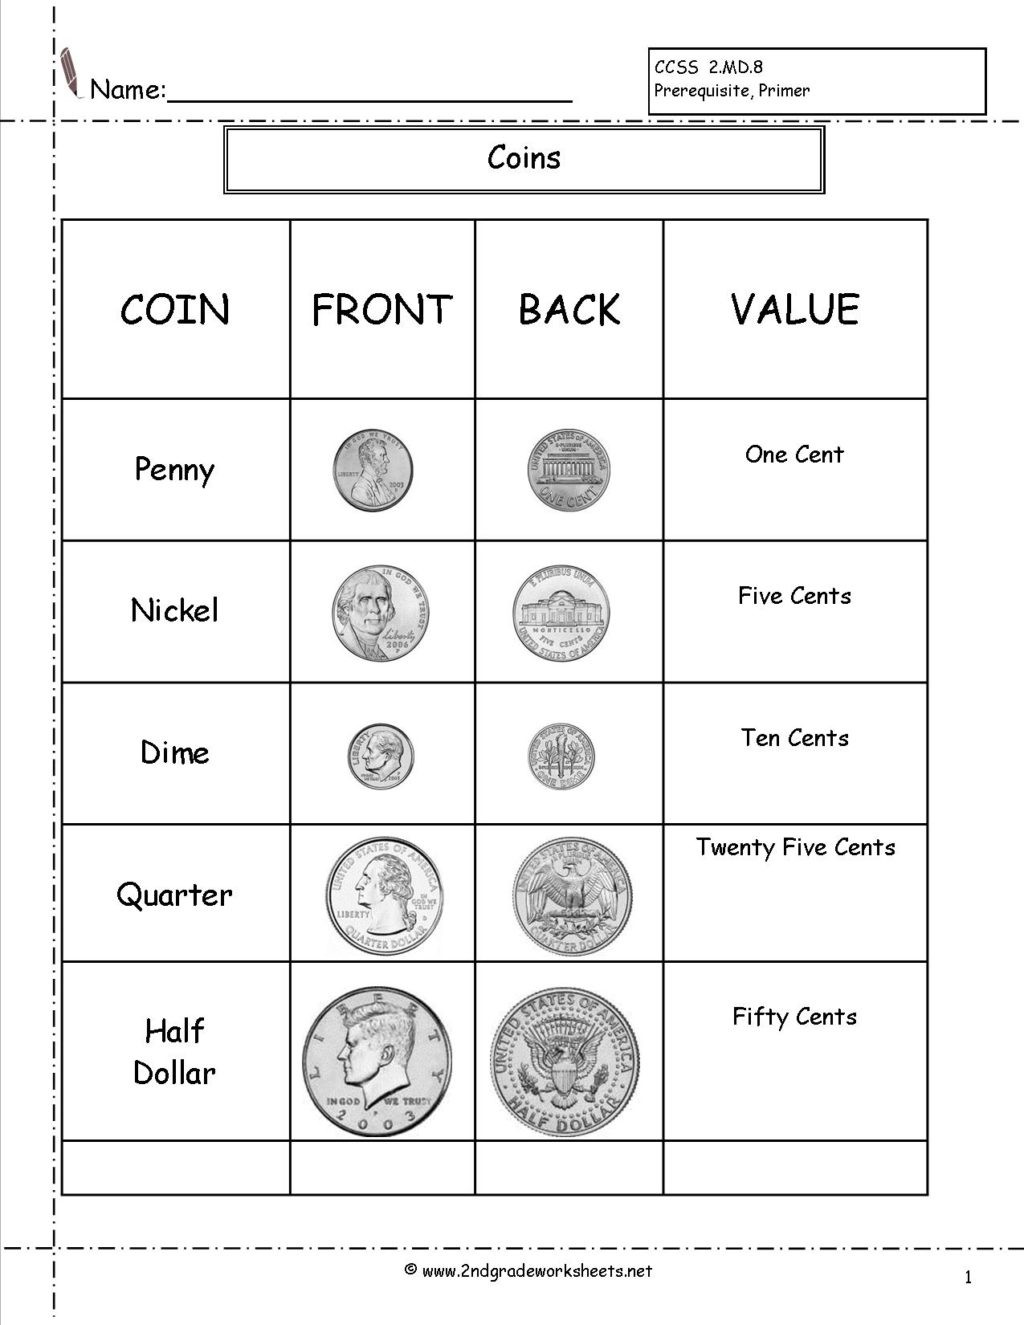 Counting Coins Worksheets First Grade Worksheet Ccss Md Worksheets Counting Coins Money Word